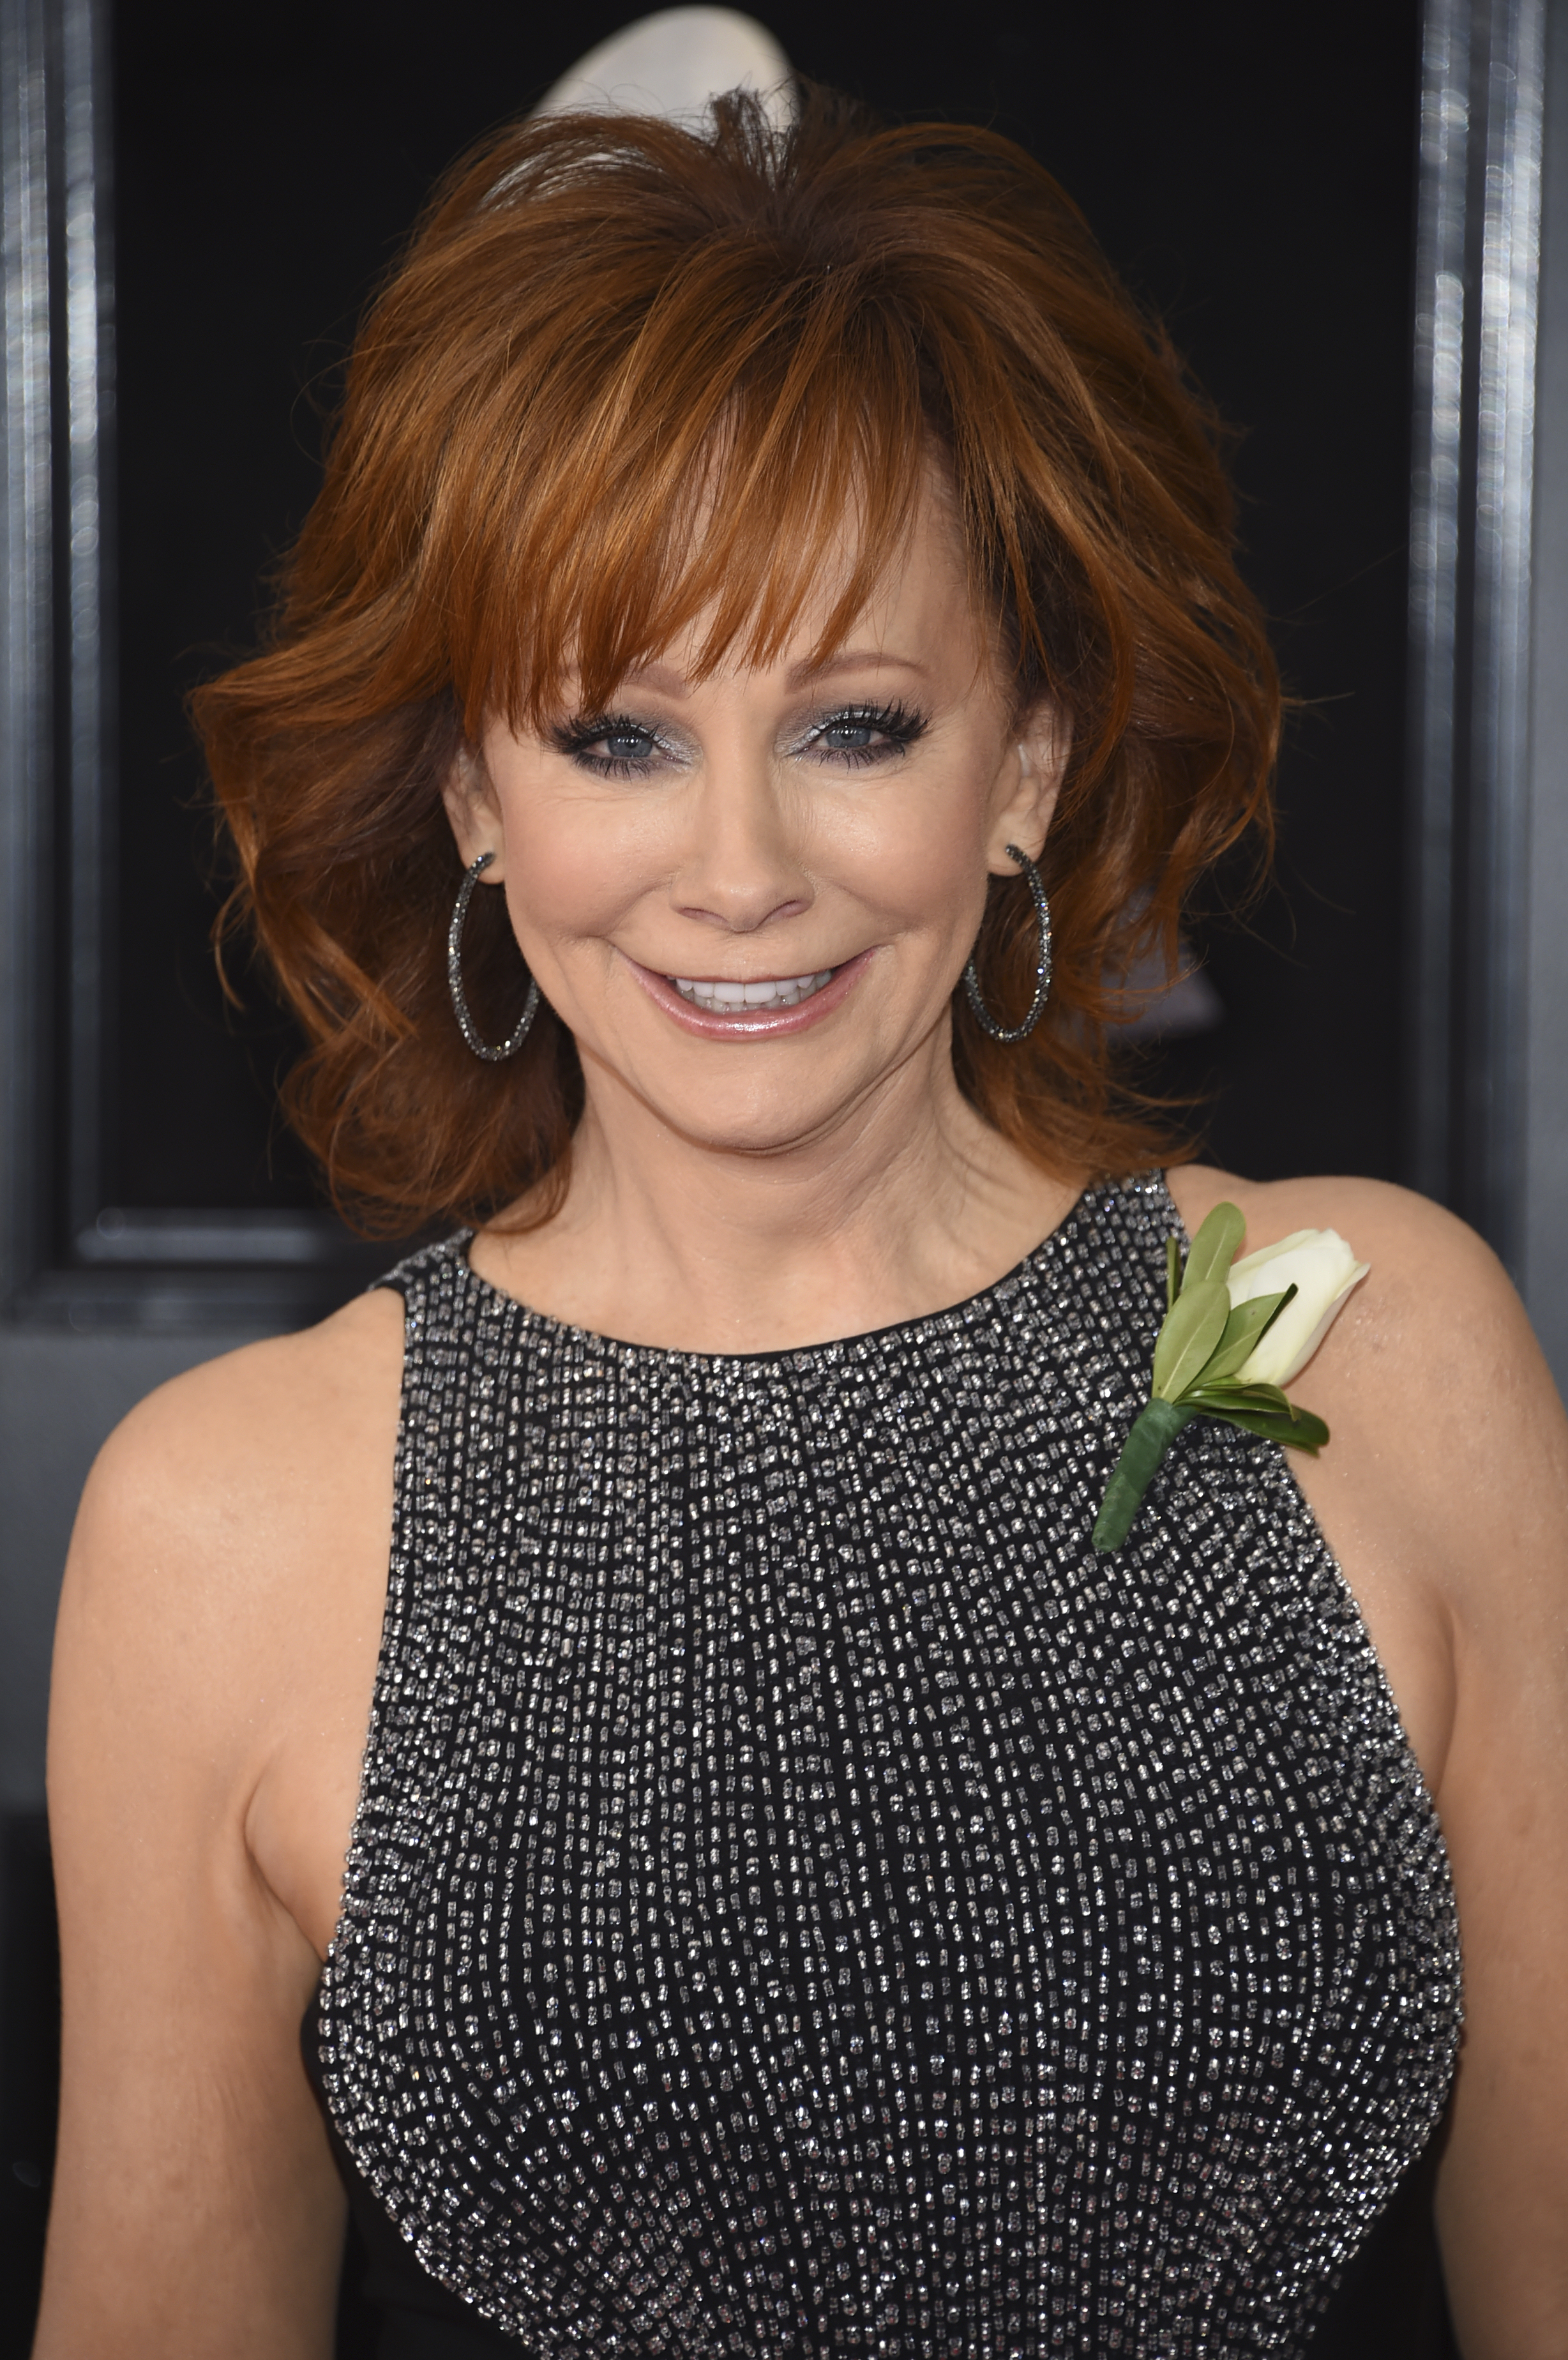 <div class='meta'><div class='origin-logo' data-origin='AP'></div><span class='caption-text' data-credit='Evan Agostini/Invision/AP'>Reba McEntire arrives at the 60th annual Grammy Awards at Madison Square Garden on Sunday, Jan. 28, 2018, in New York.</span></div>